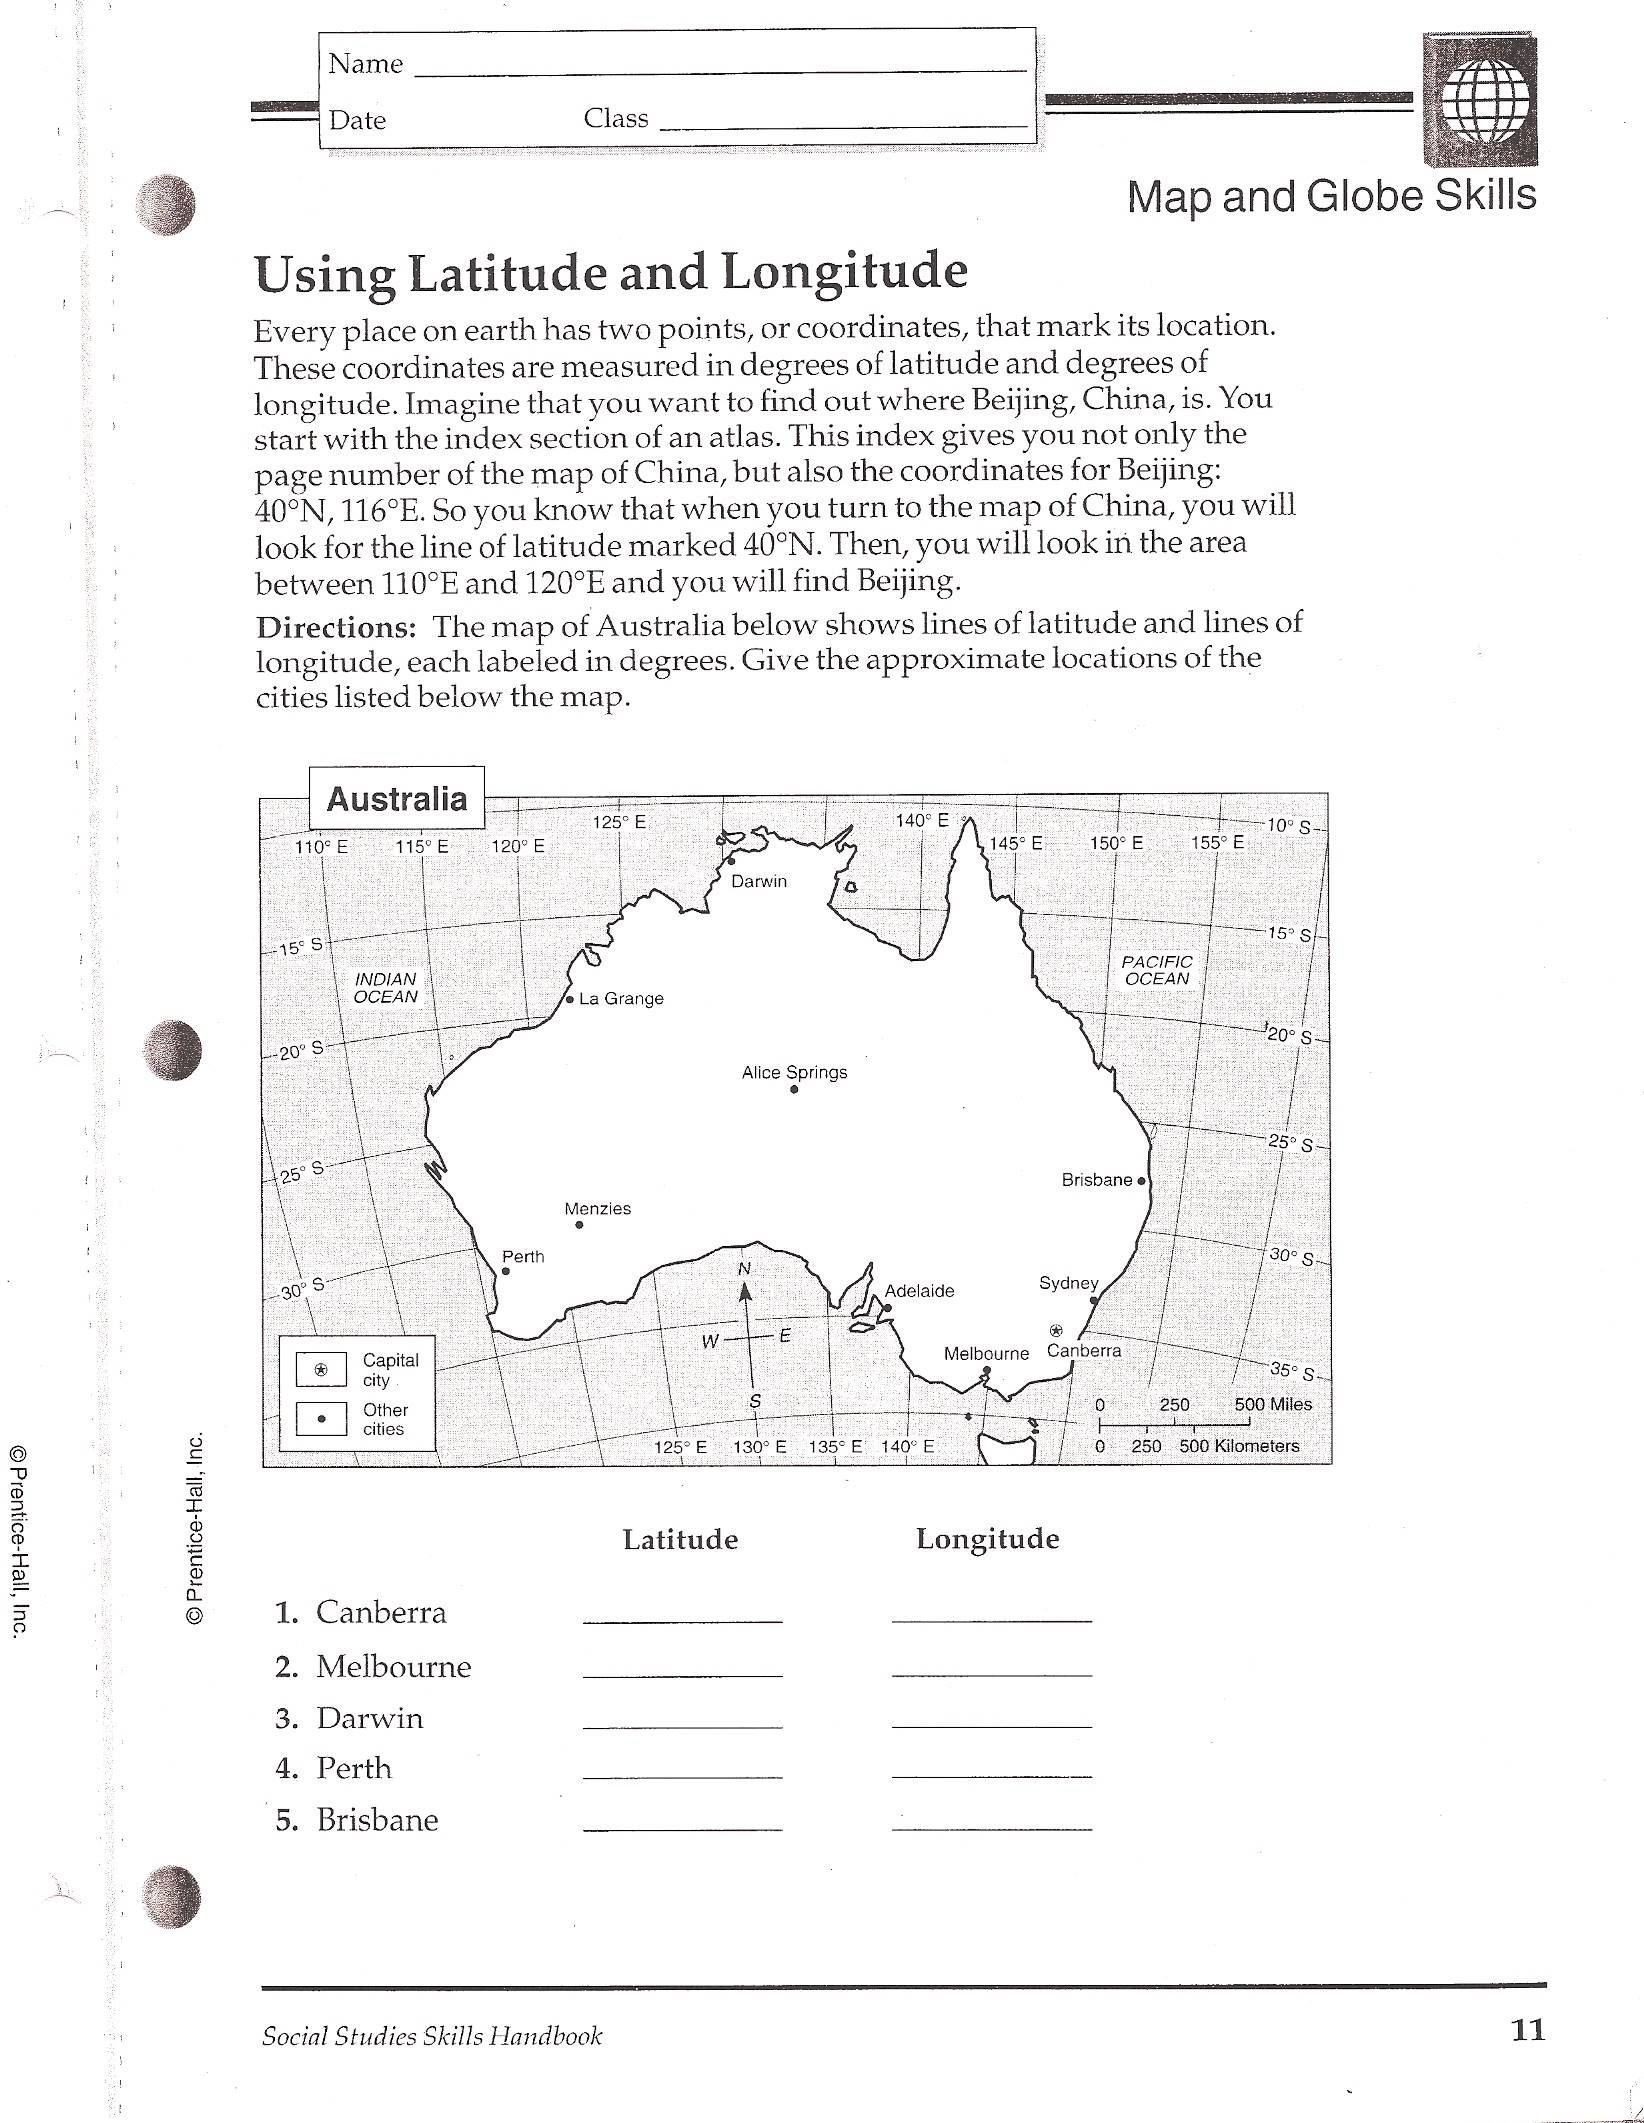 worksheet latitude and longitude worksheets latitude and longitude practice worksheets free library w ksheets l titude